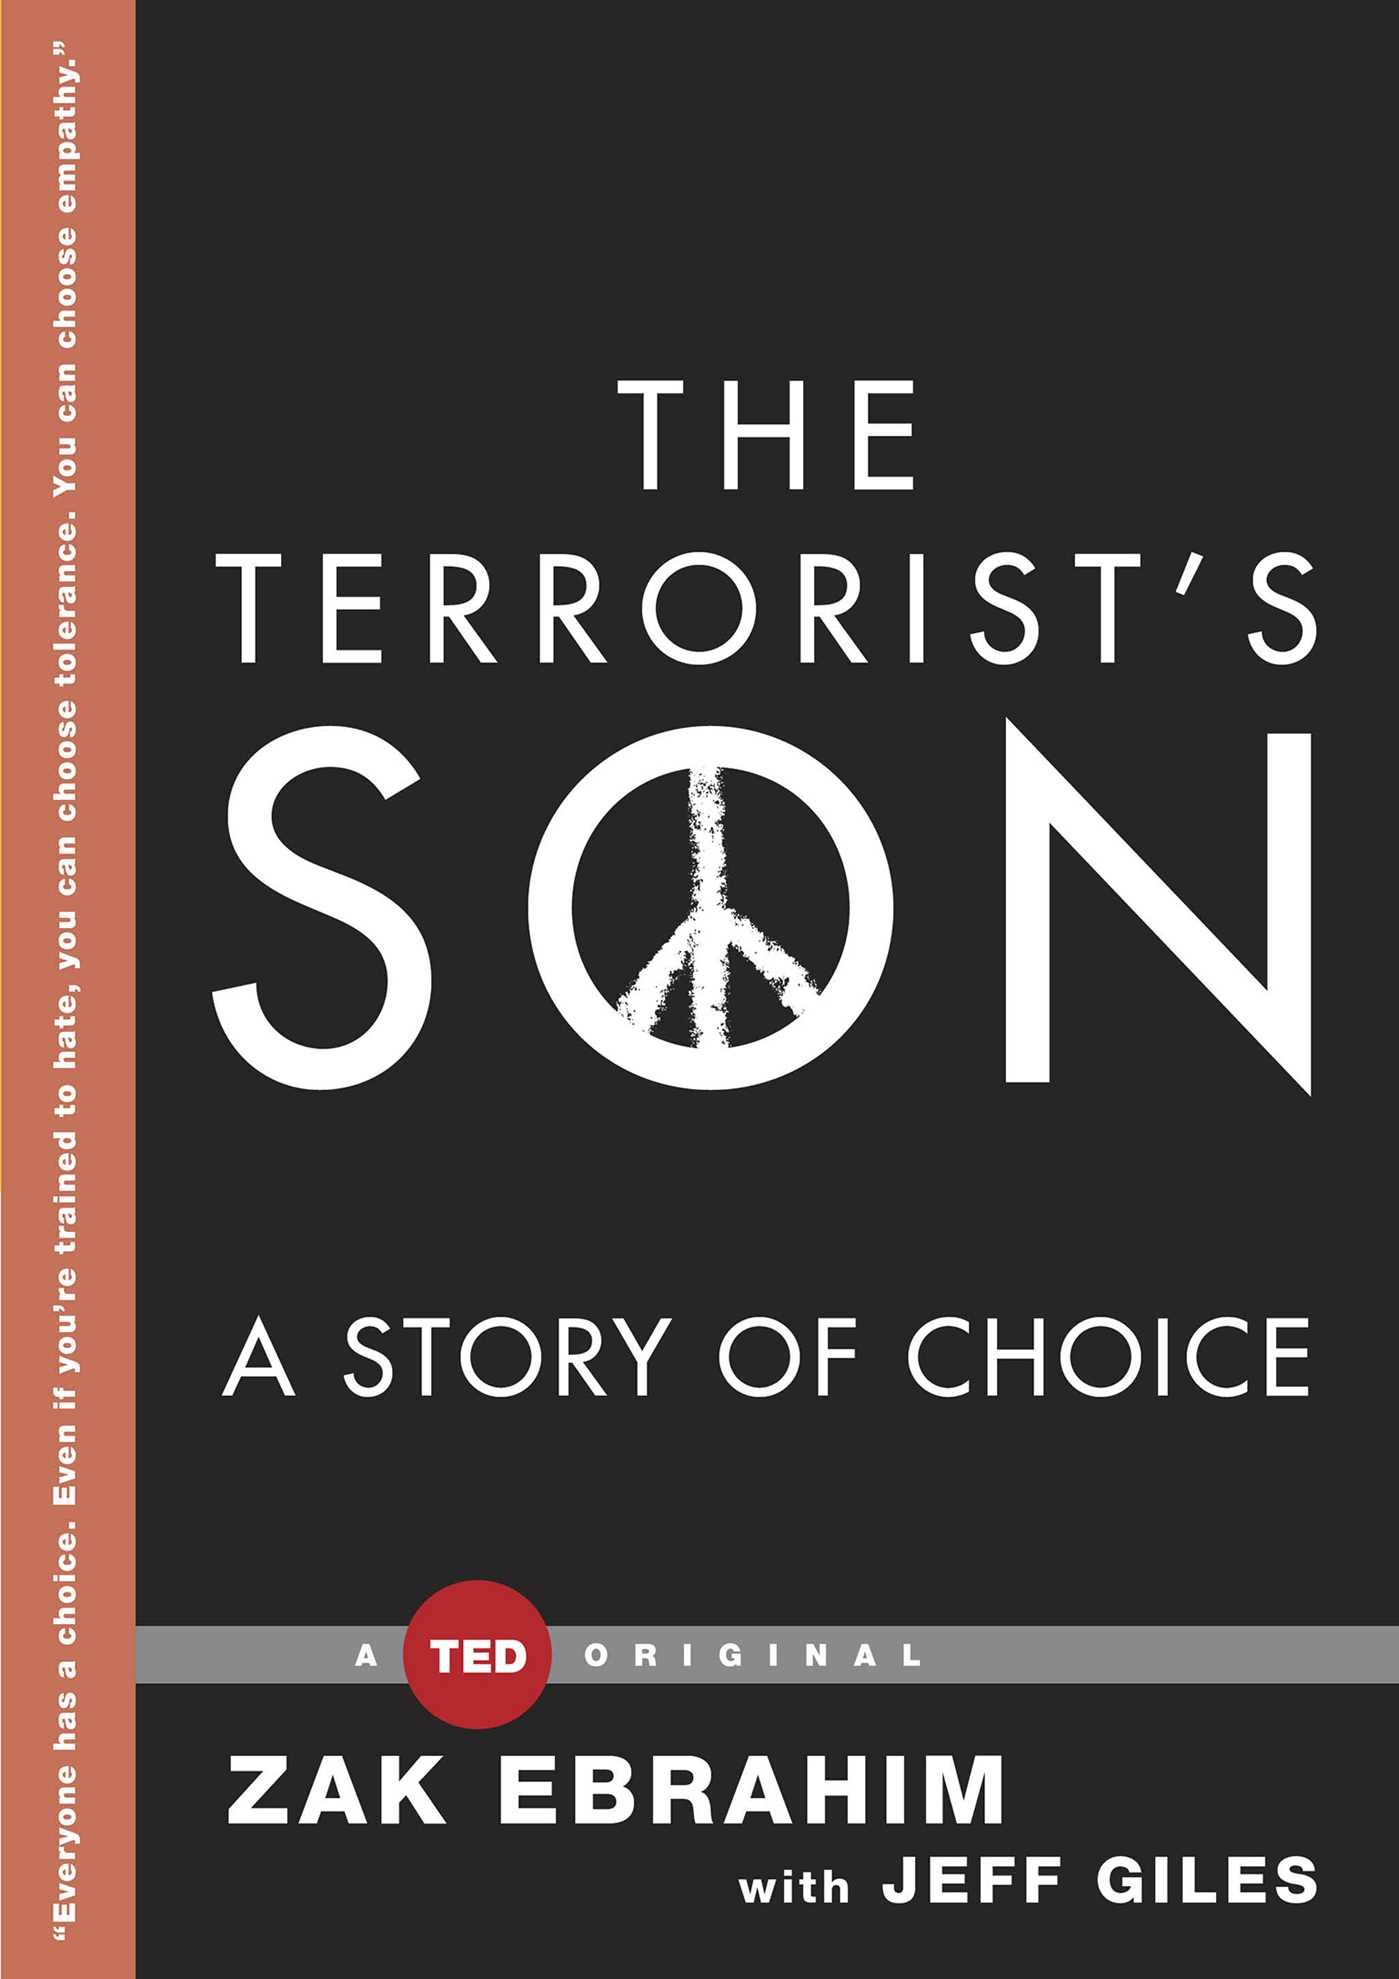 TED Books - The Terrorist's Son: A Story of Choice by Zak Ebrahim